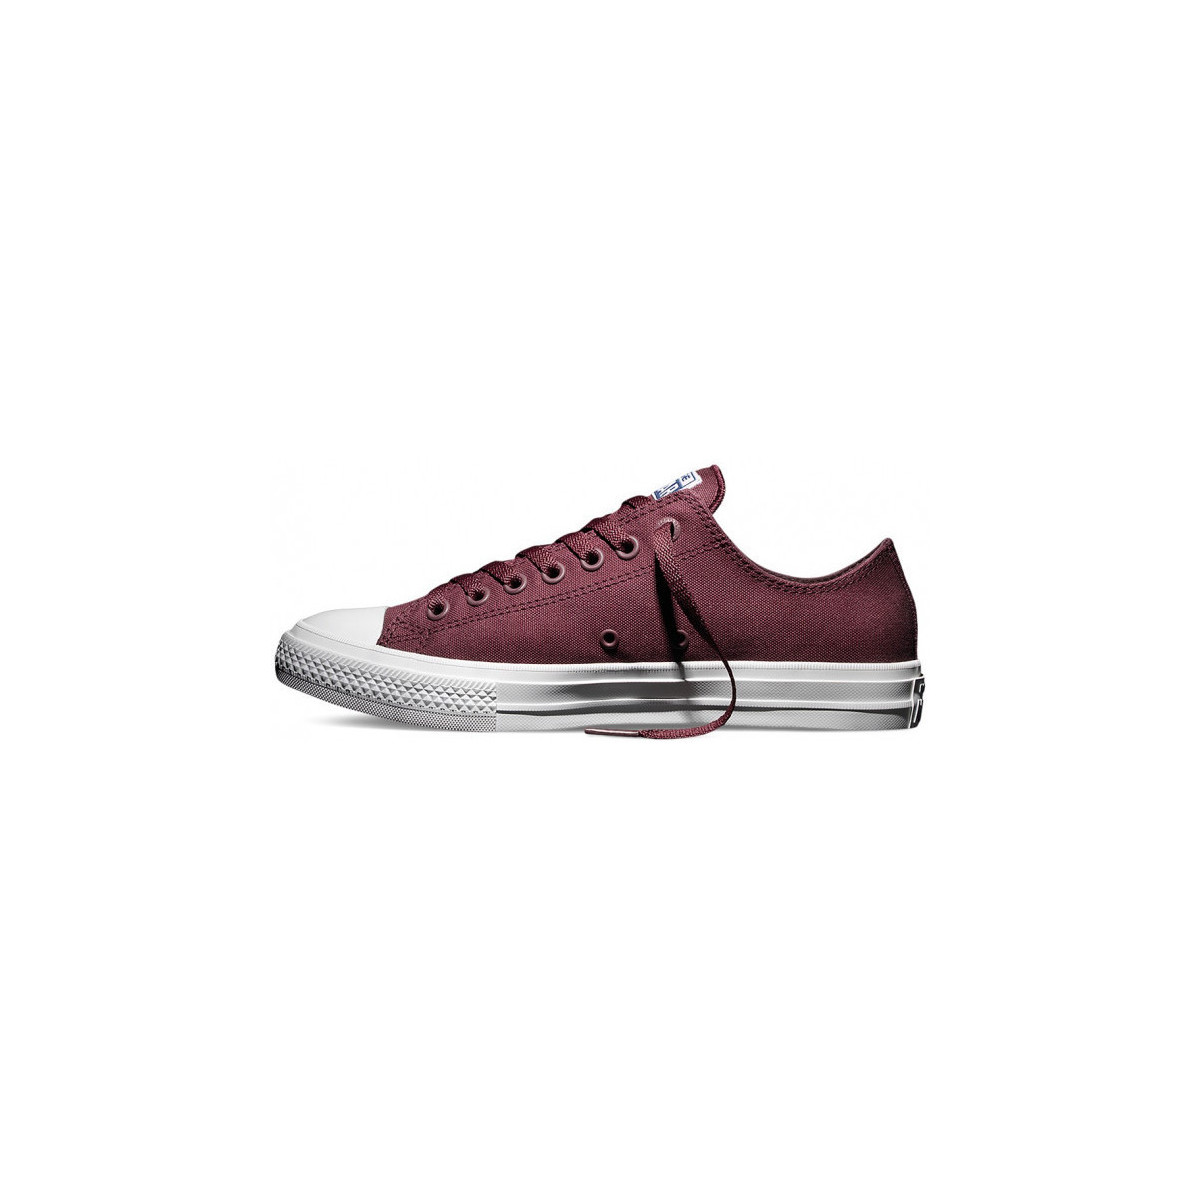 Converse Basket CT Canvas Lo 2 - Ref. 150150C Bordeaux